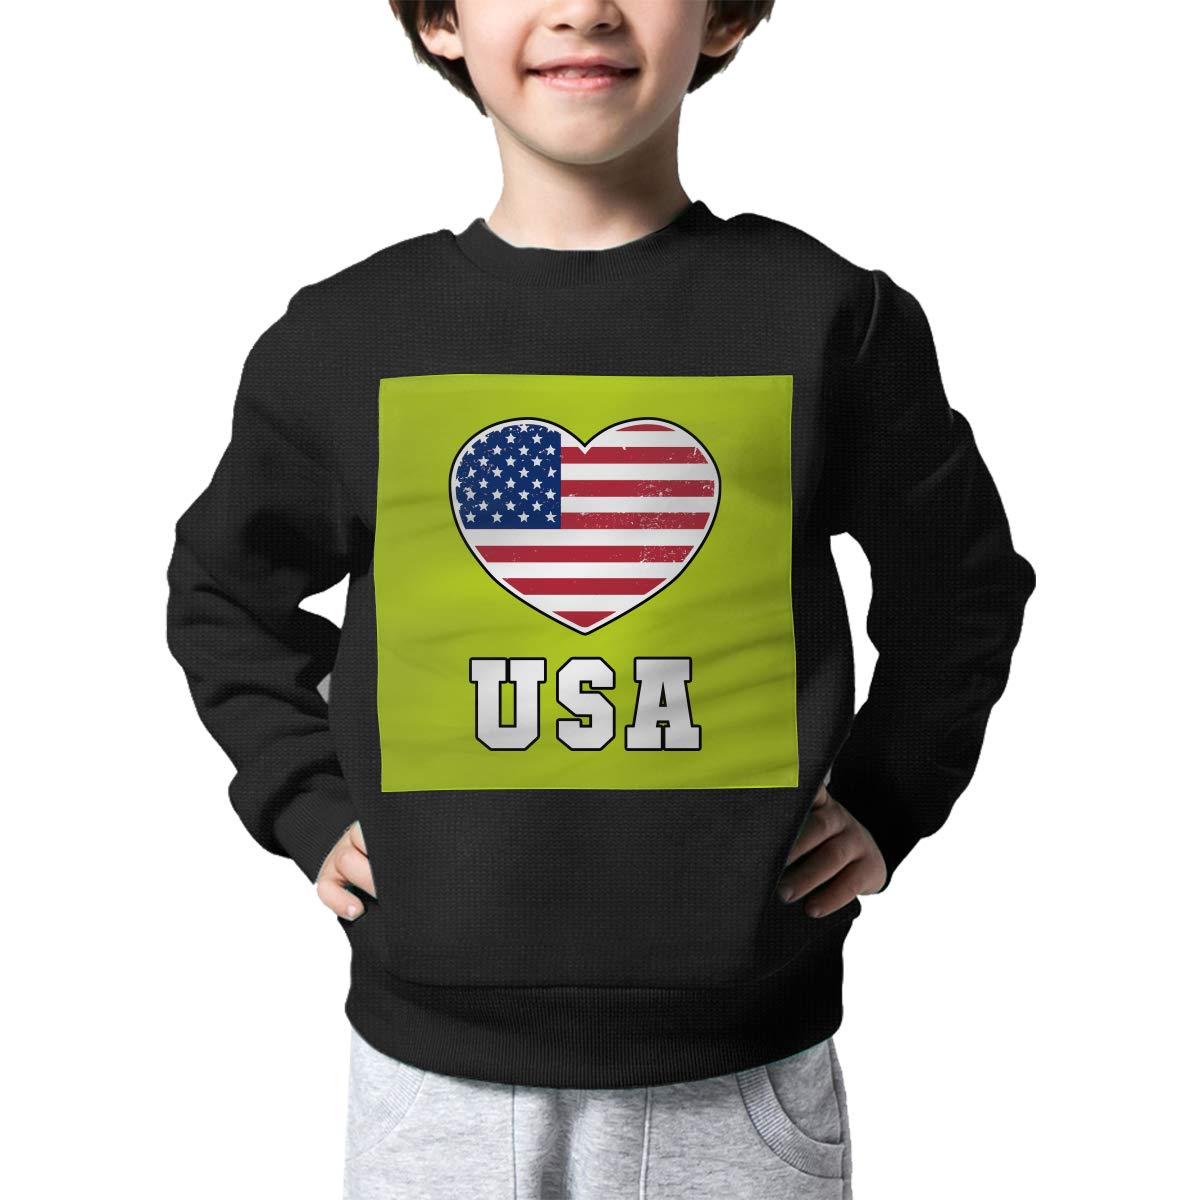 AW-KOCP Childrens Patriotic USA Heart American Flag Sweater Baby Boys Outerwear